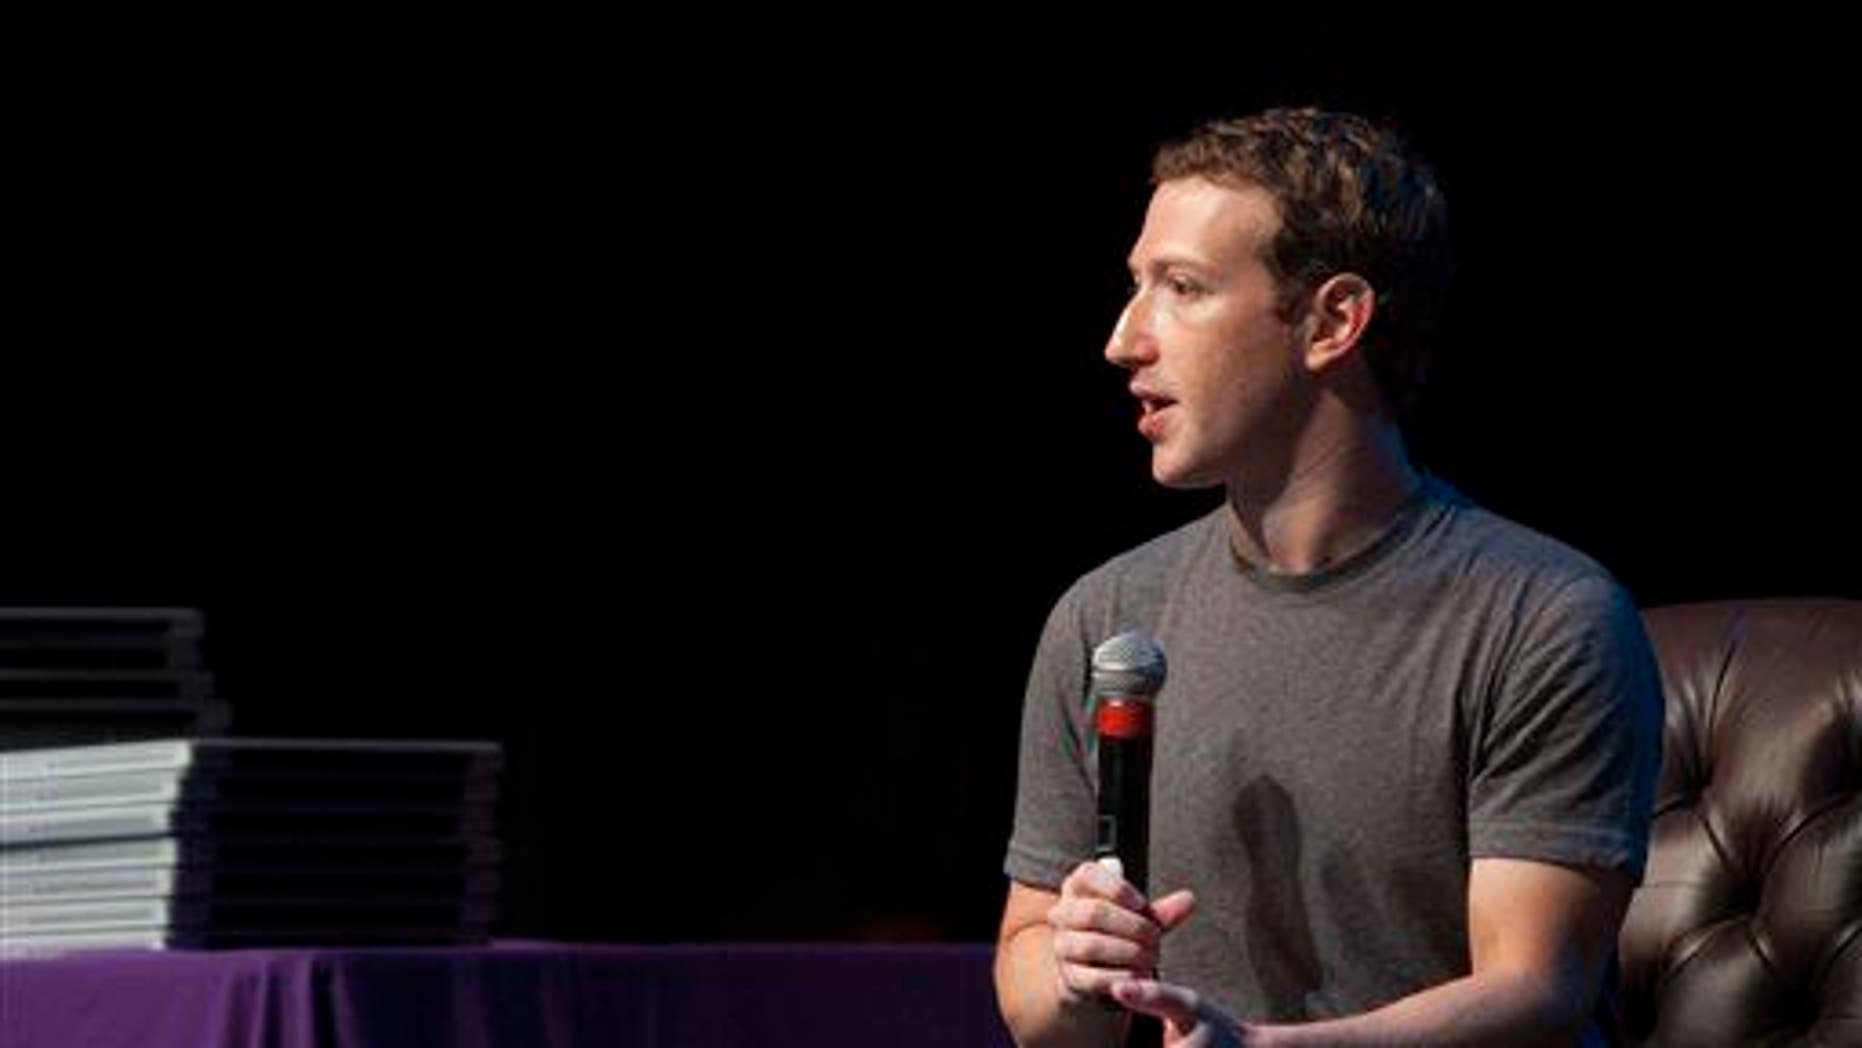 In a Sept. 18, 2014, file photo, Facebook CEO Mark Zuckerberg speaks to students during a special assembly at Sequoia High School in Redwood City, Calif.